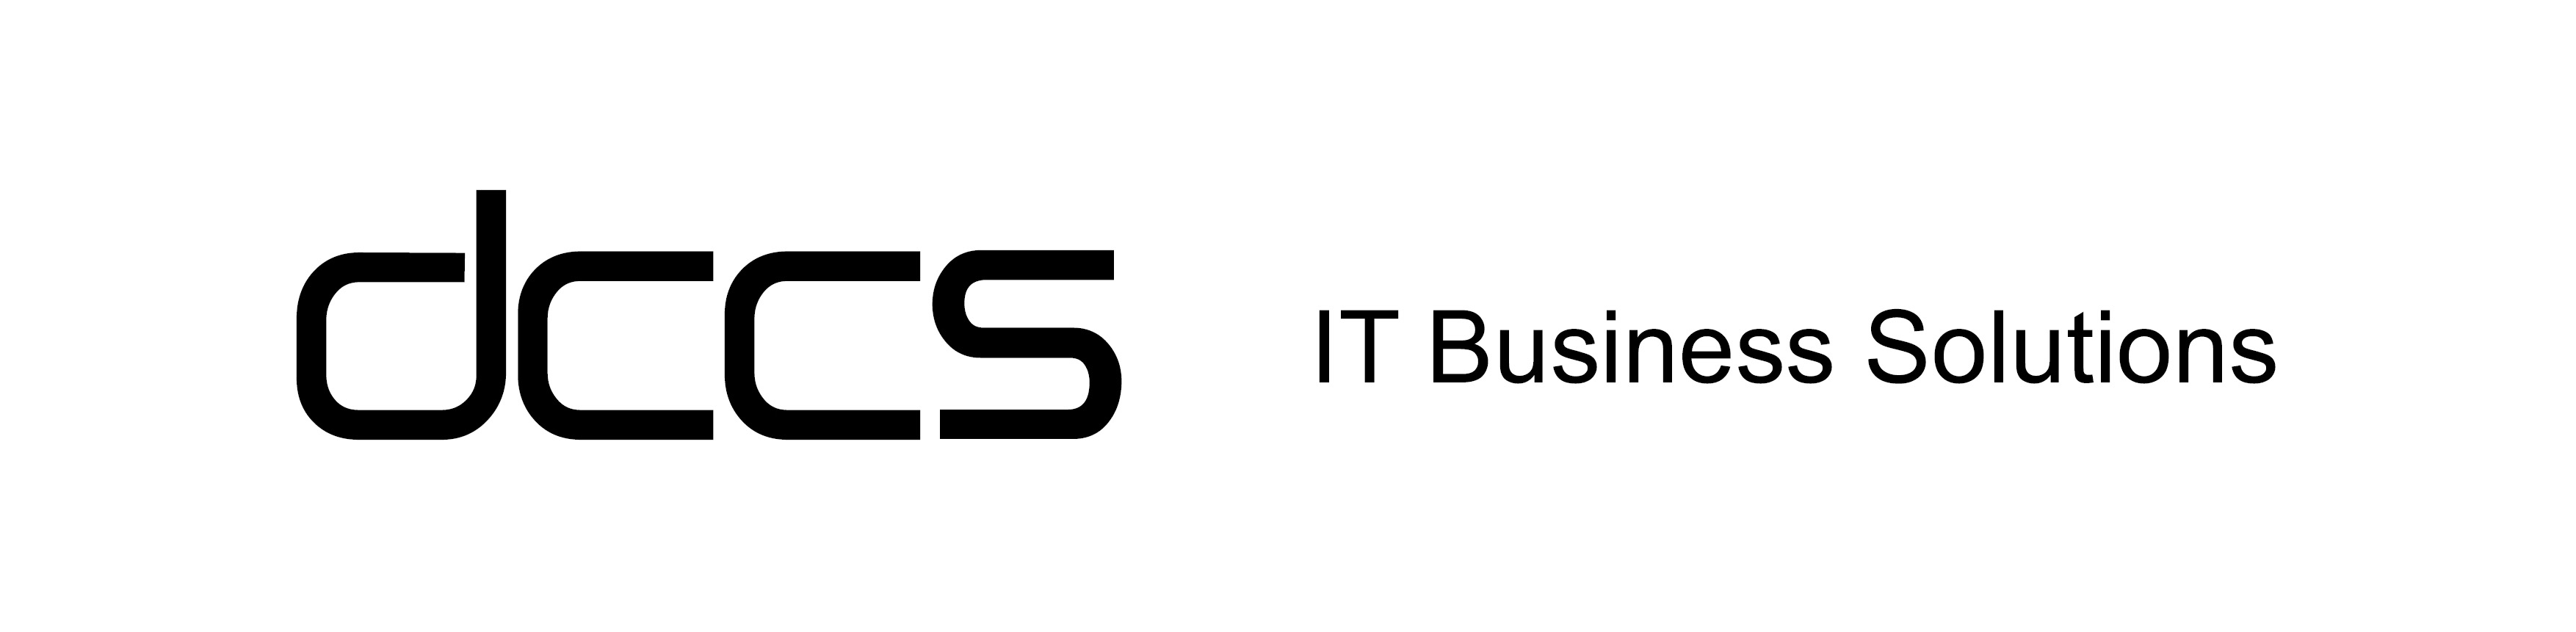 dccs_it_business_solutions_logo_mitweißundRahmen.jpg